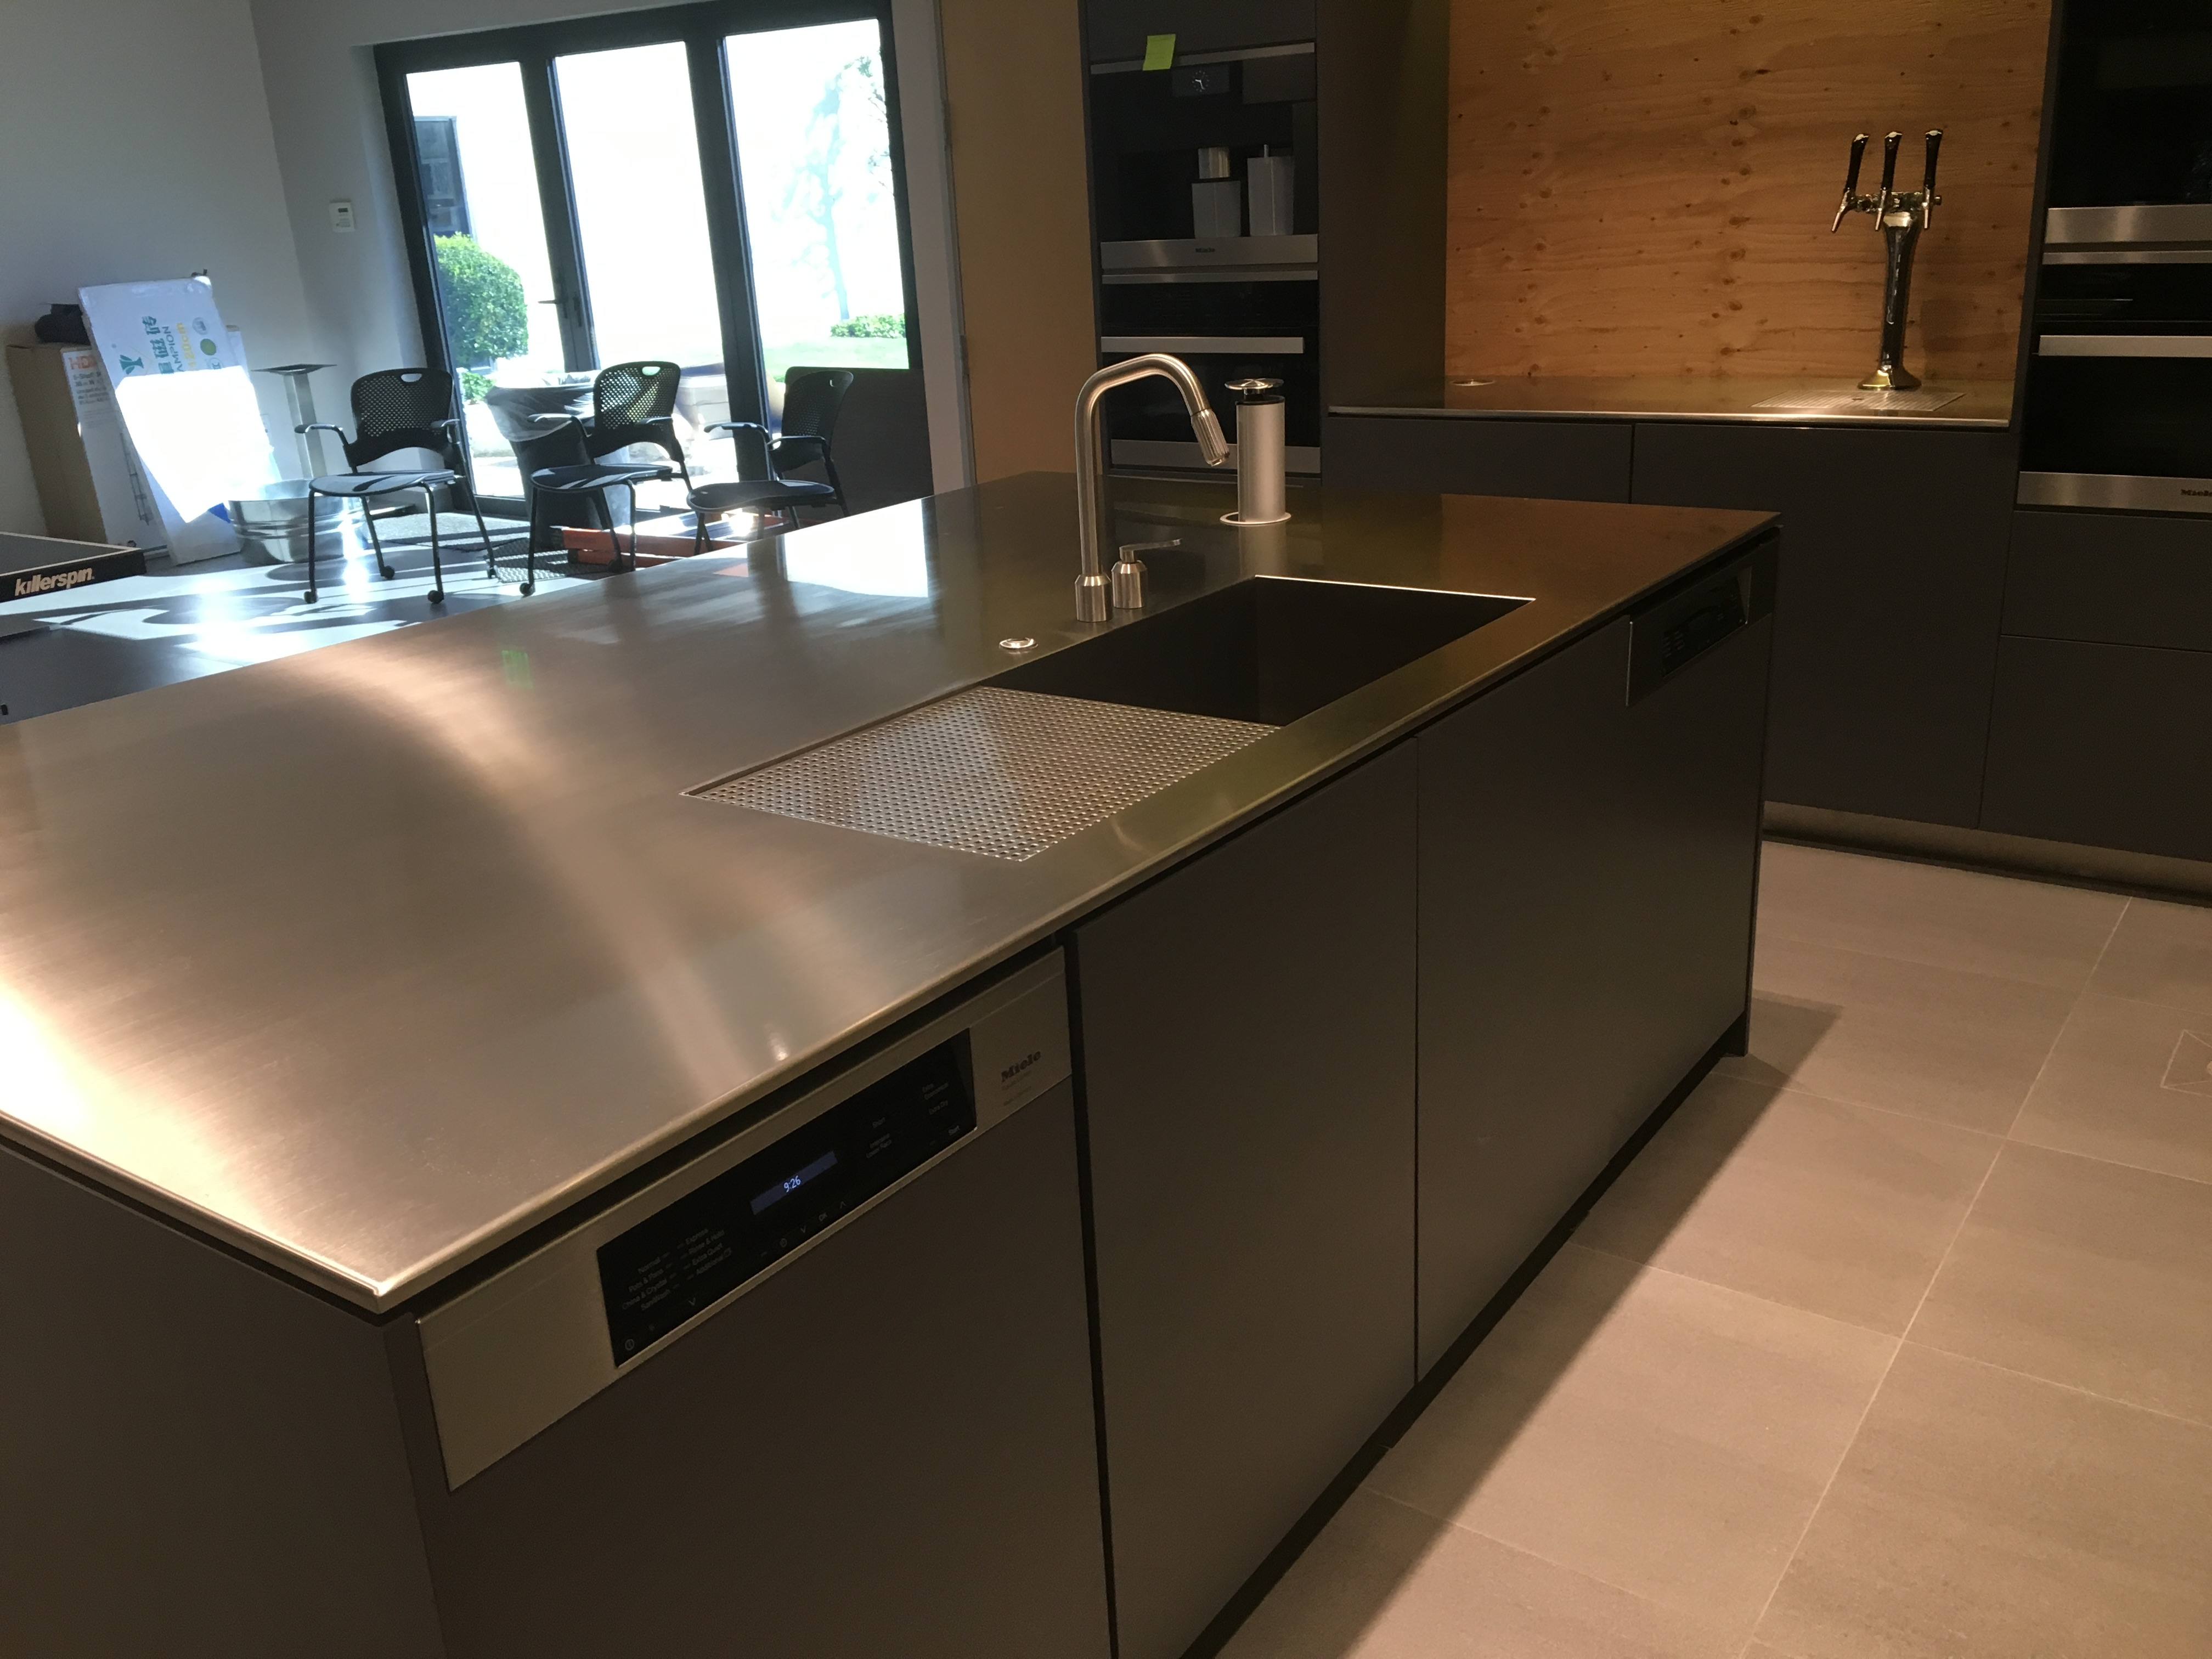 kitchen made portfolios steel page countertops with gas range hood custom vent stainless categories mckerlie portfolio a wolf shelving construction